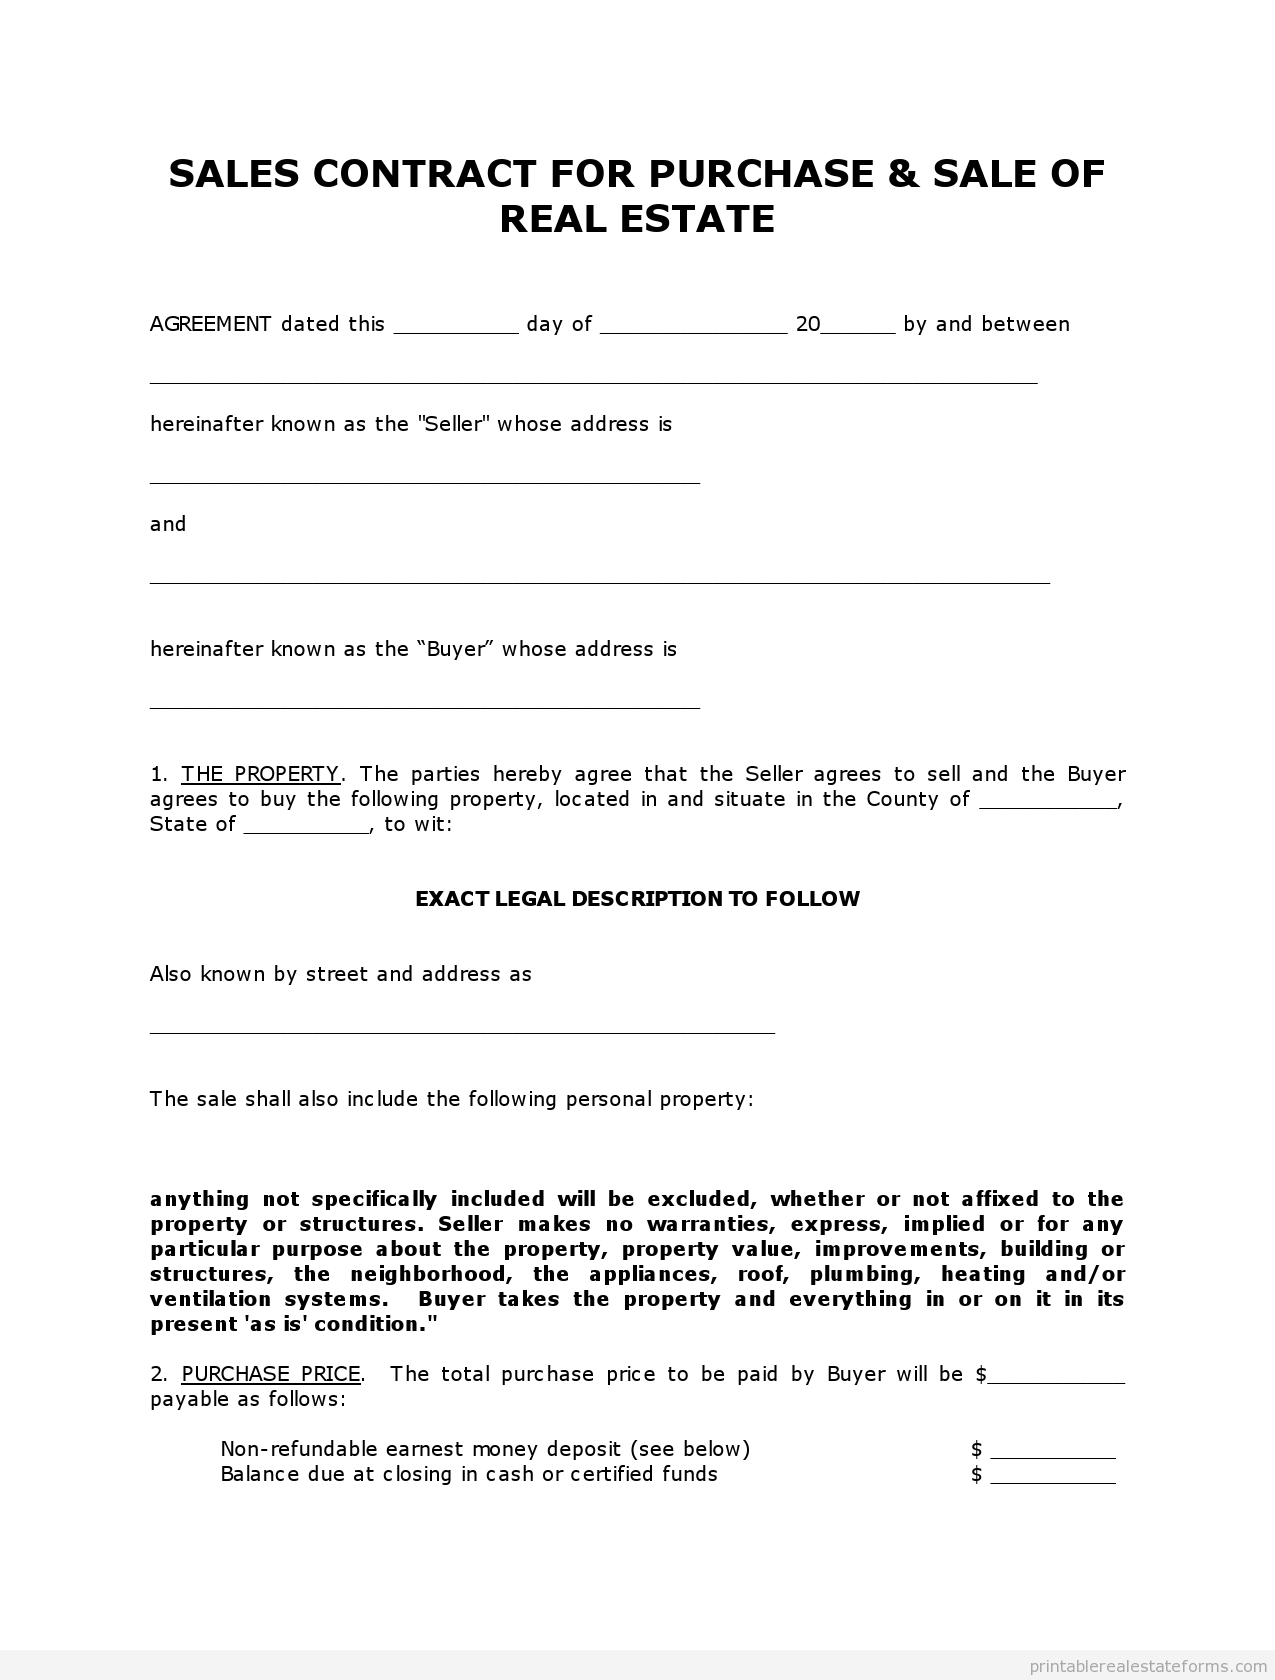 Printable Real Estate Forms  Free Sales Contract Template